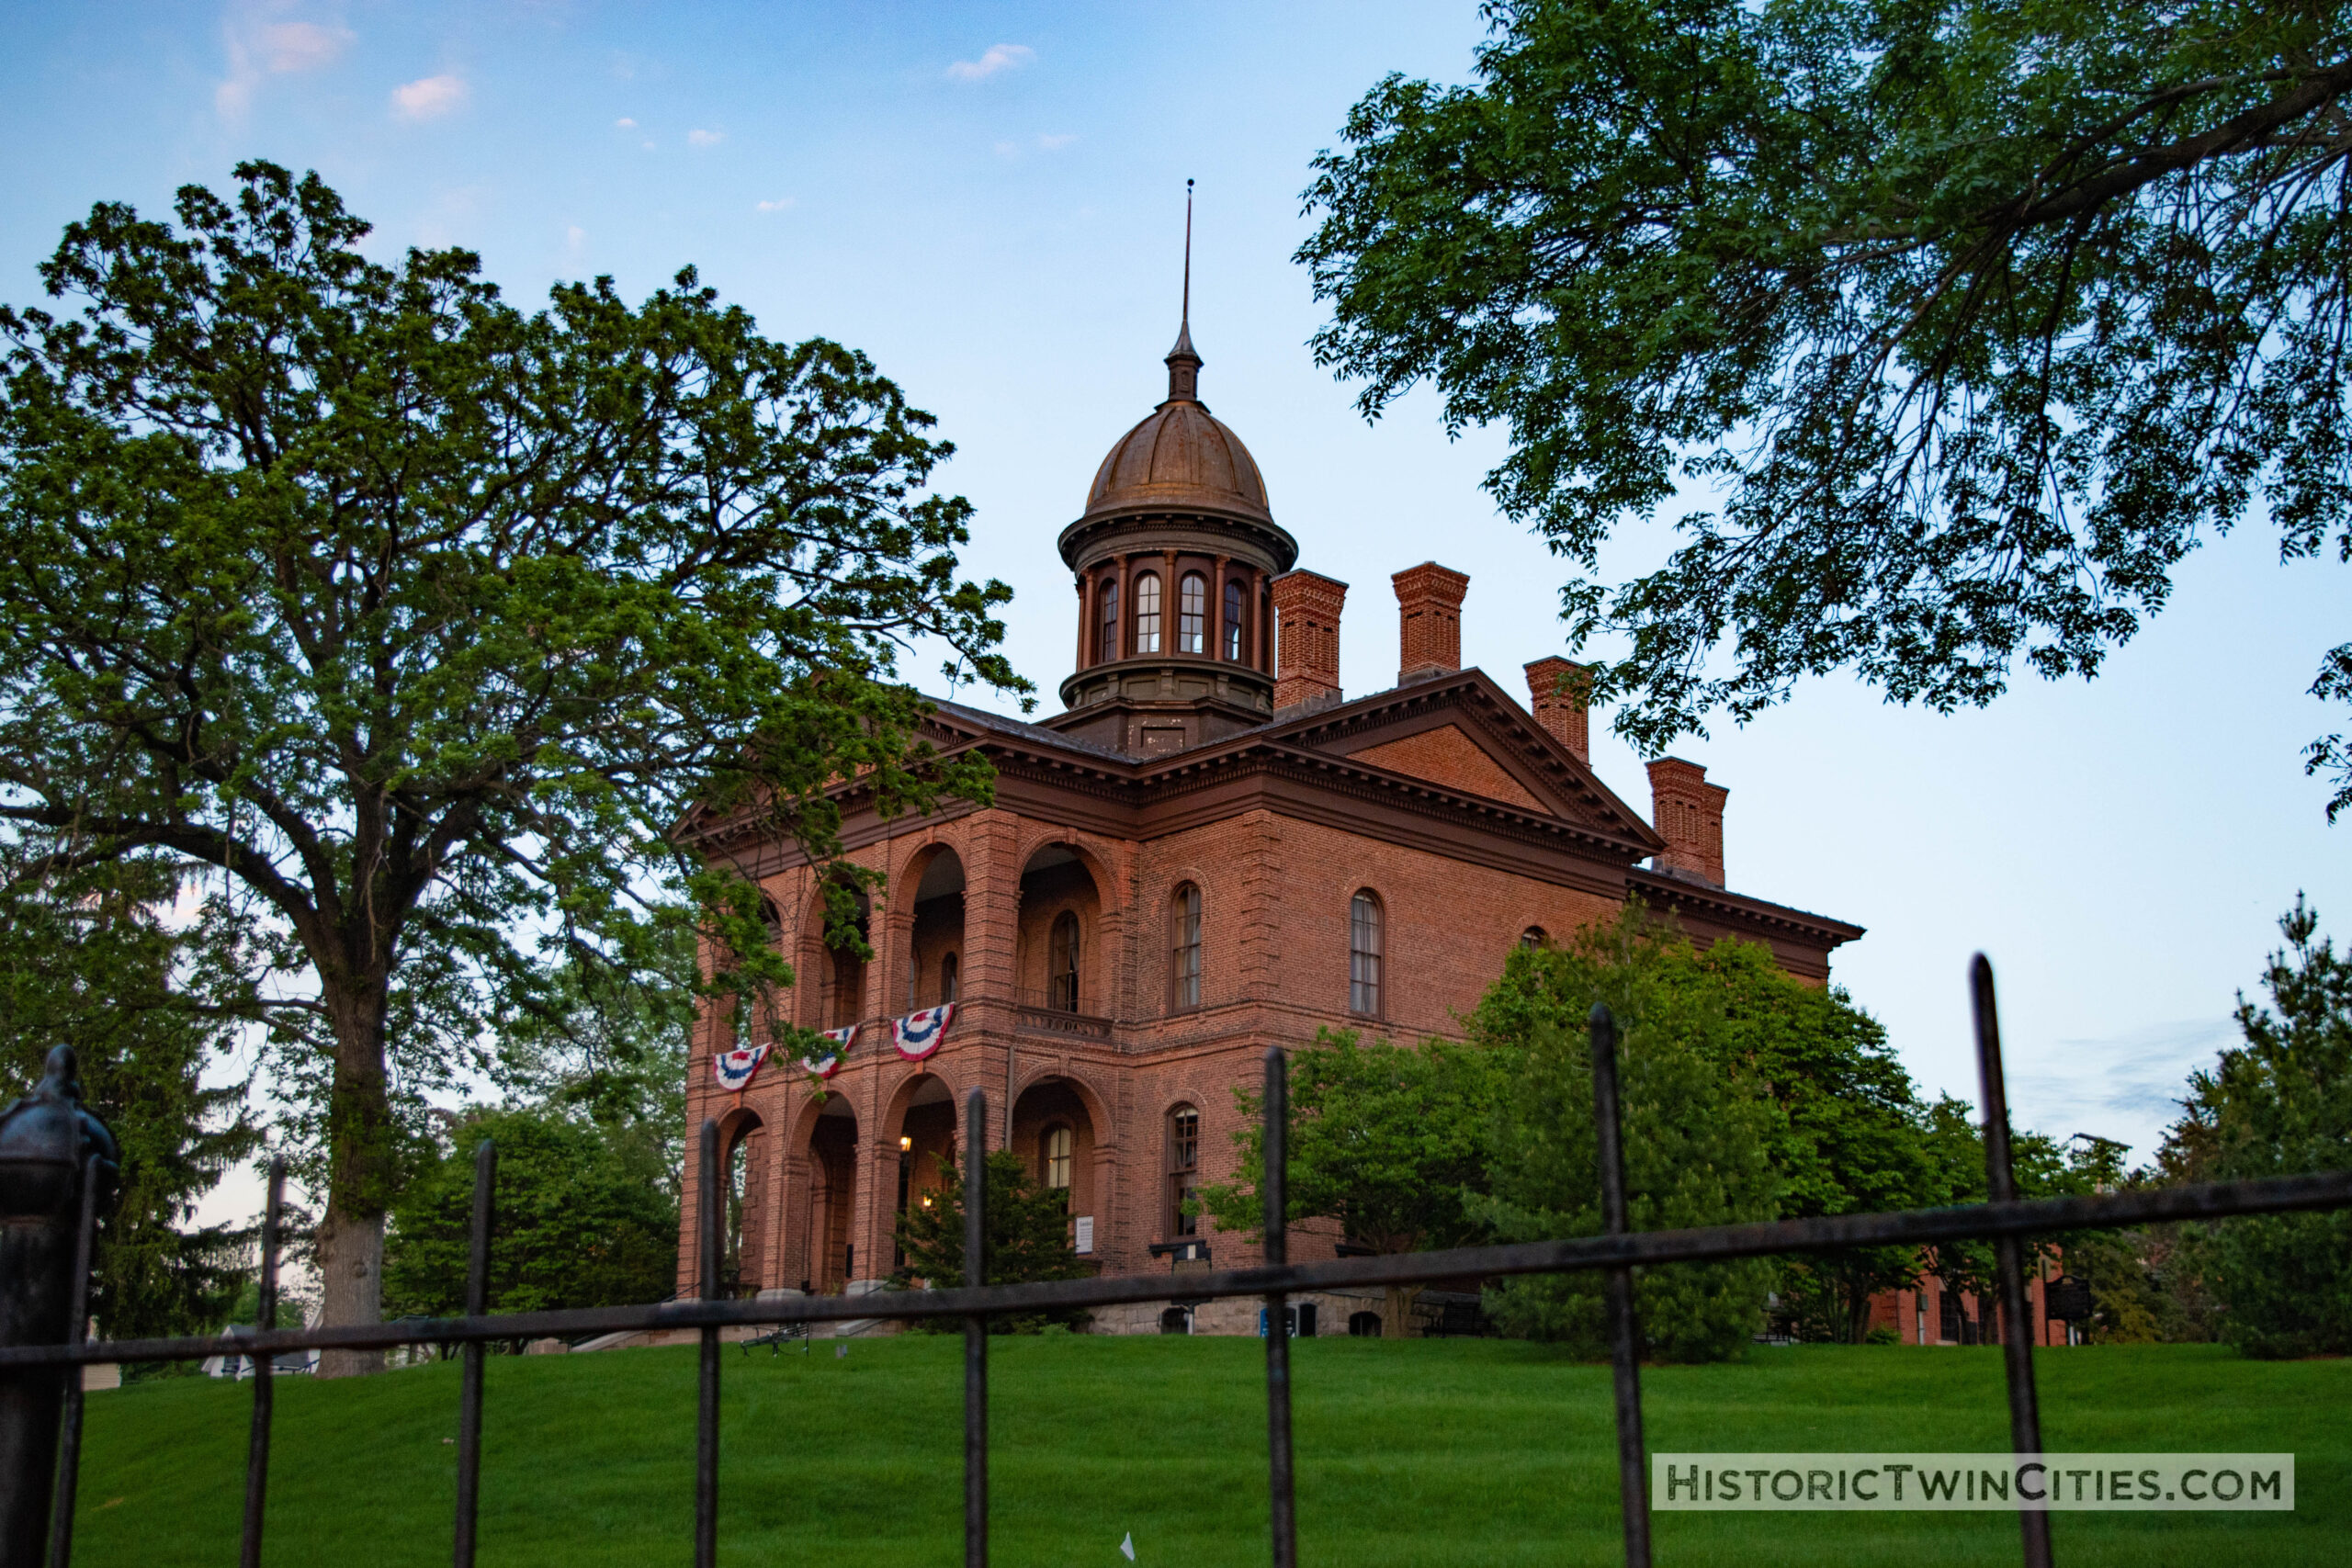 Washington County Historic Courthouse - Historic Twin Cities intended for Court Calendar For Washington County Minnesota